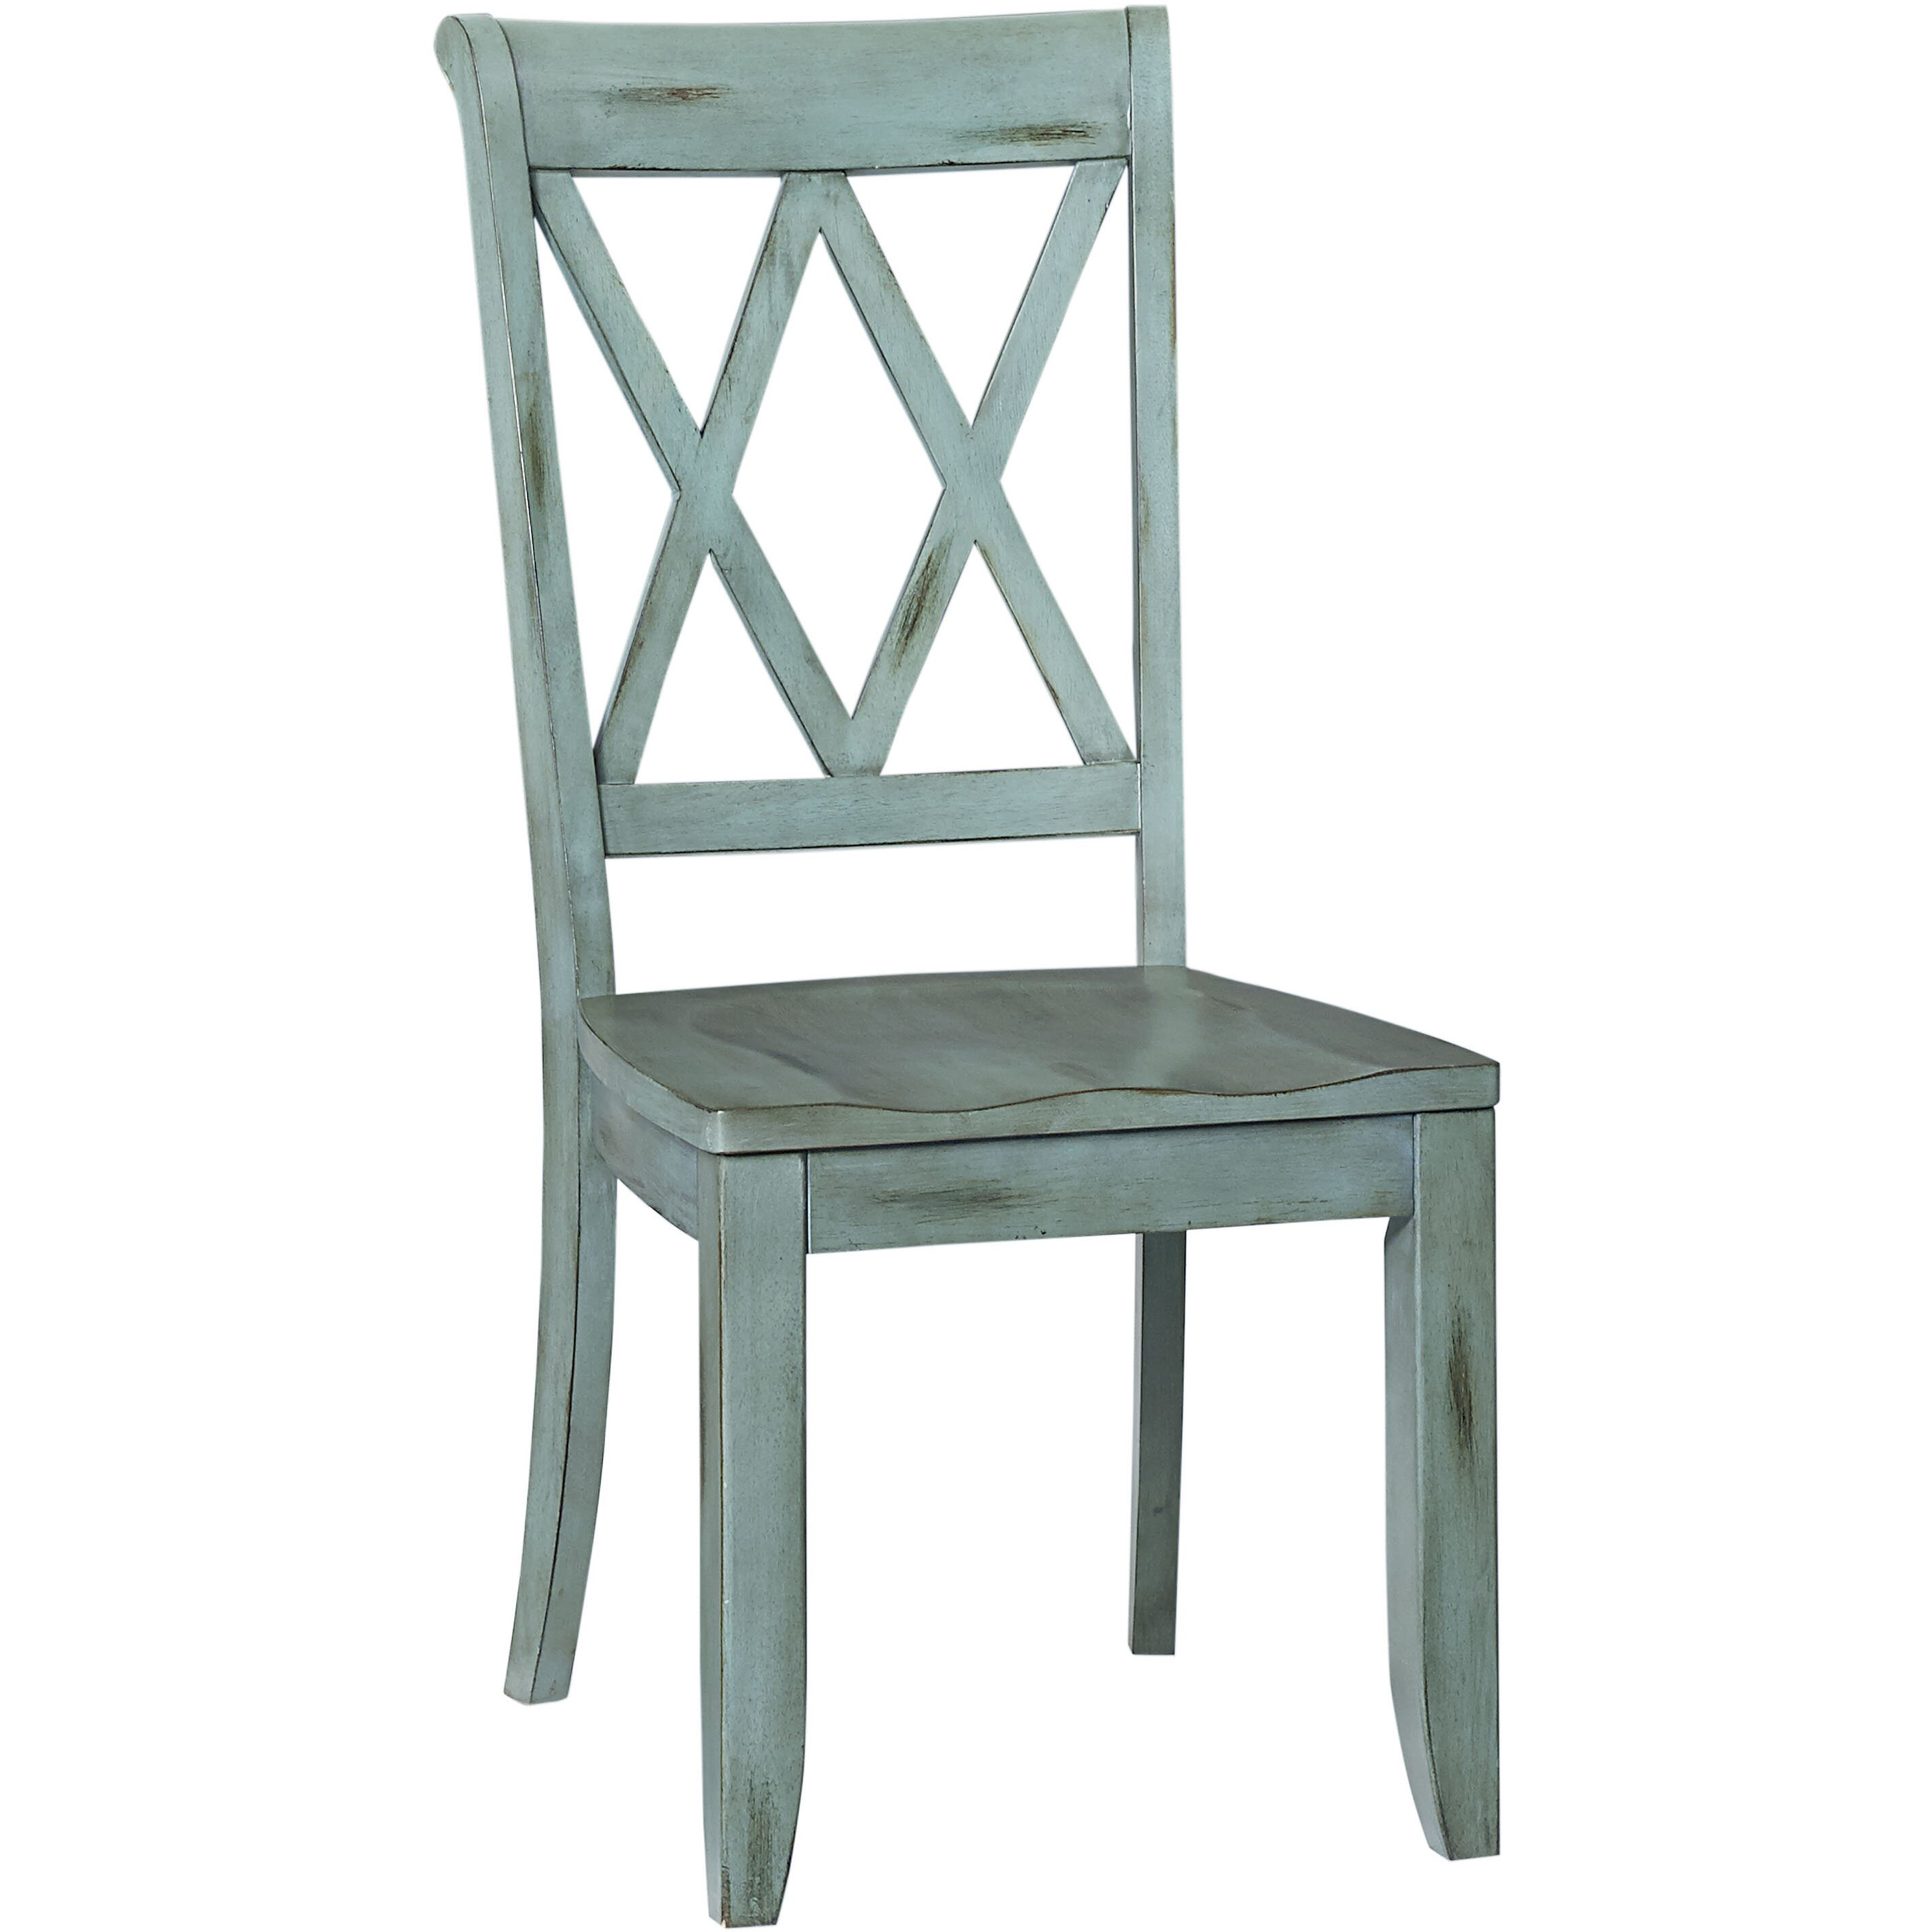 Lark manor saint gratien side chair reviews wayfair for Furniture chairs